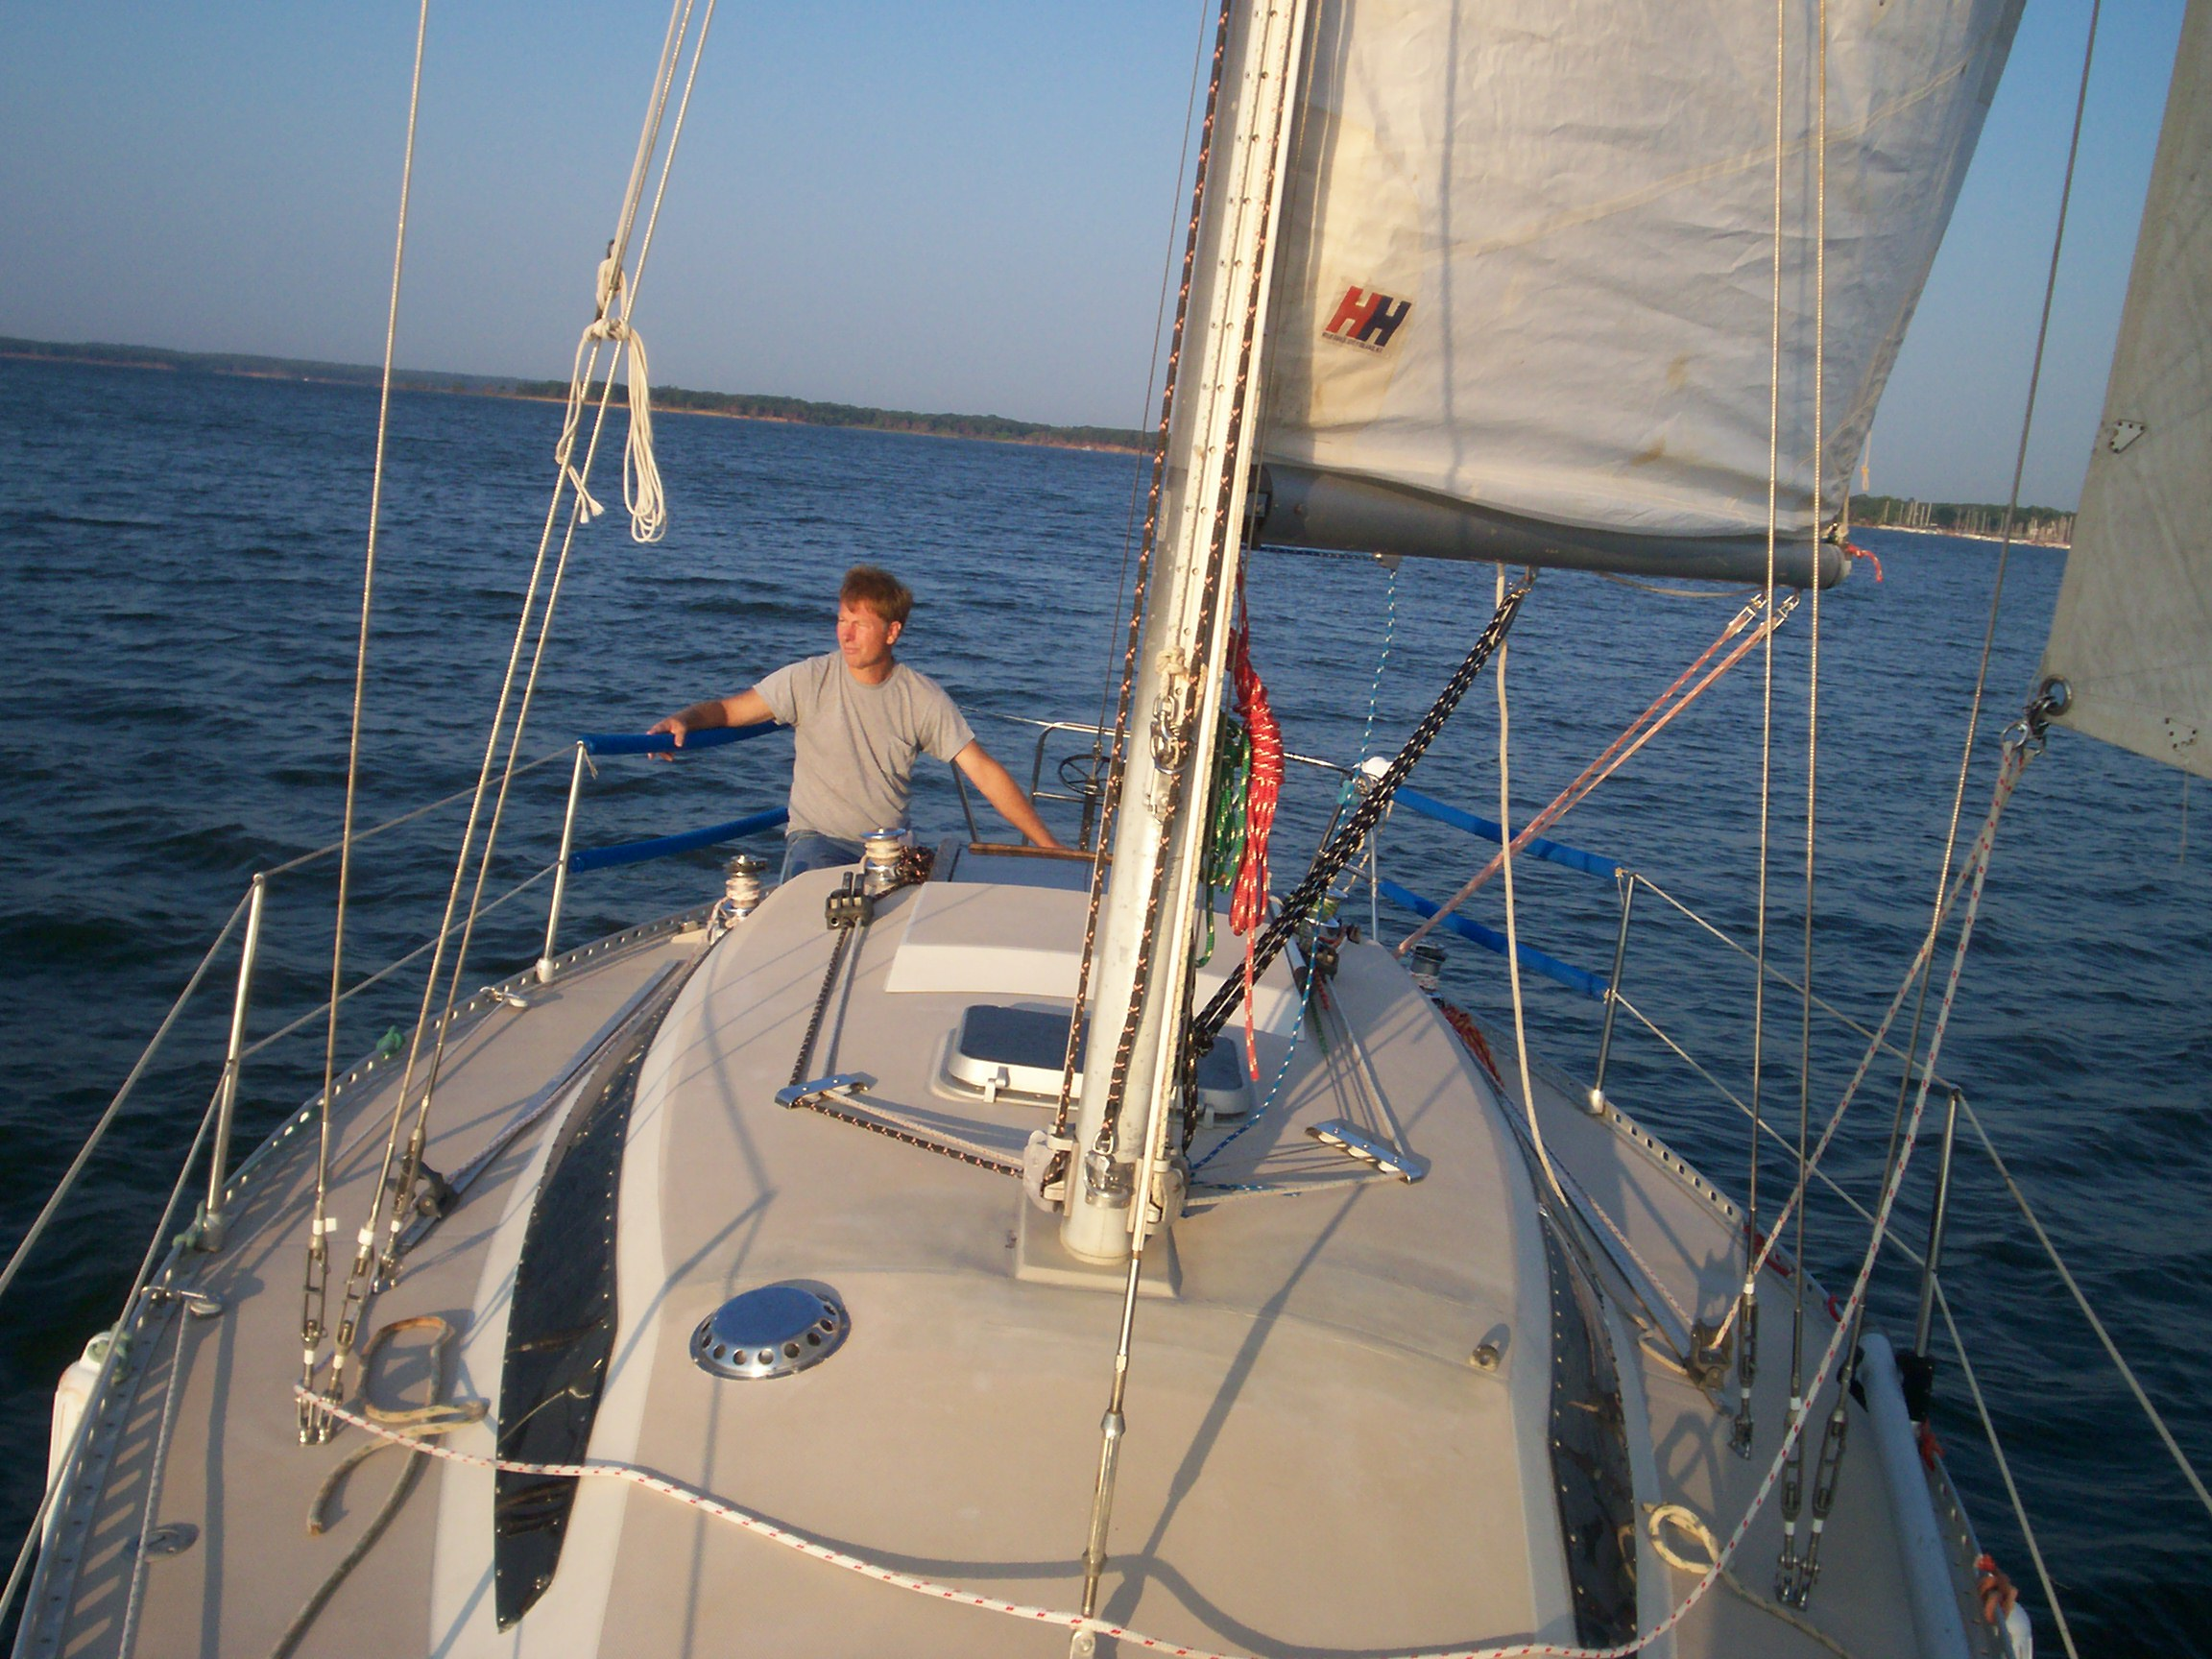 Richard At The Helm